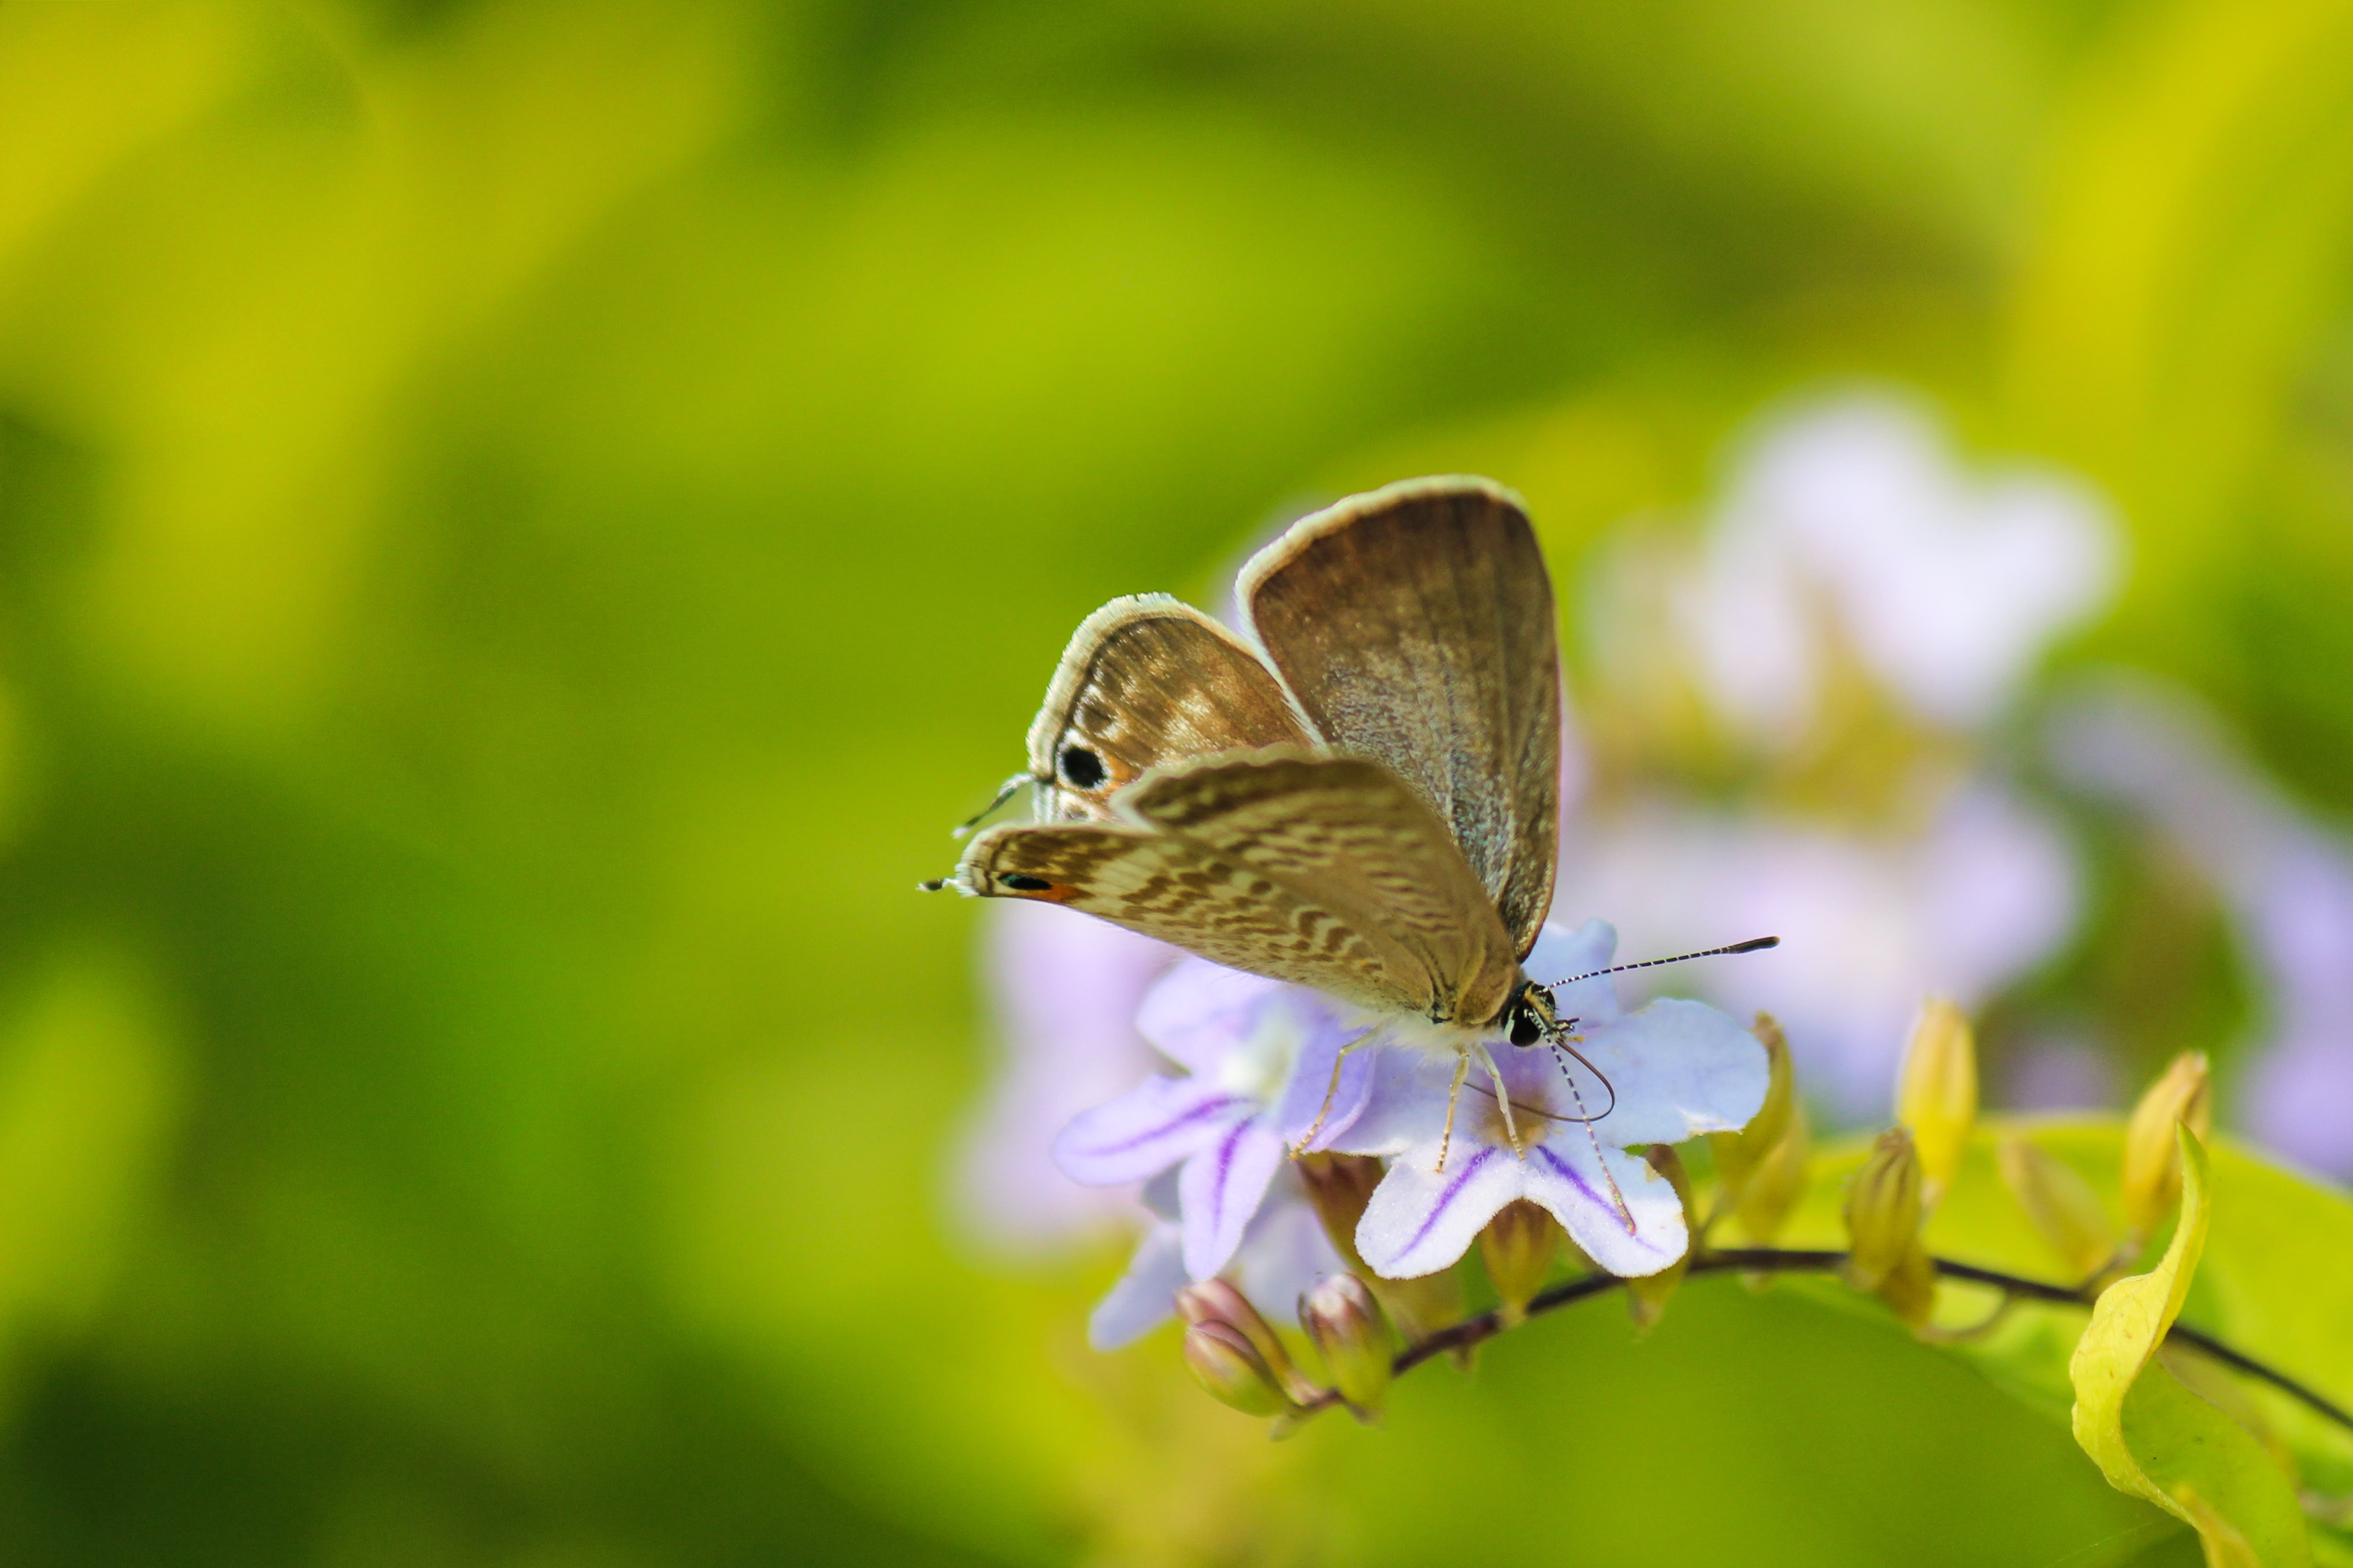 A beige-winged butterfly on light violet flowers